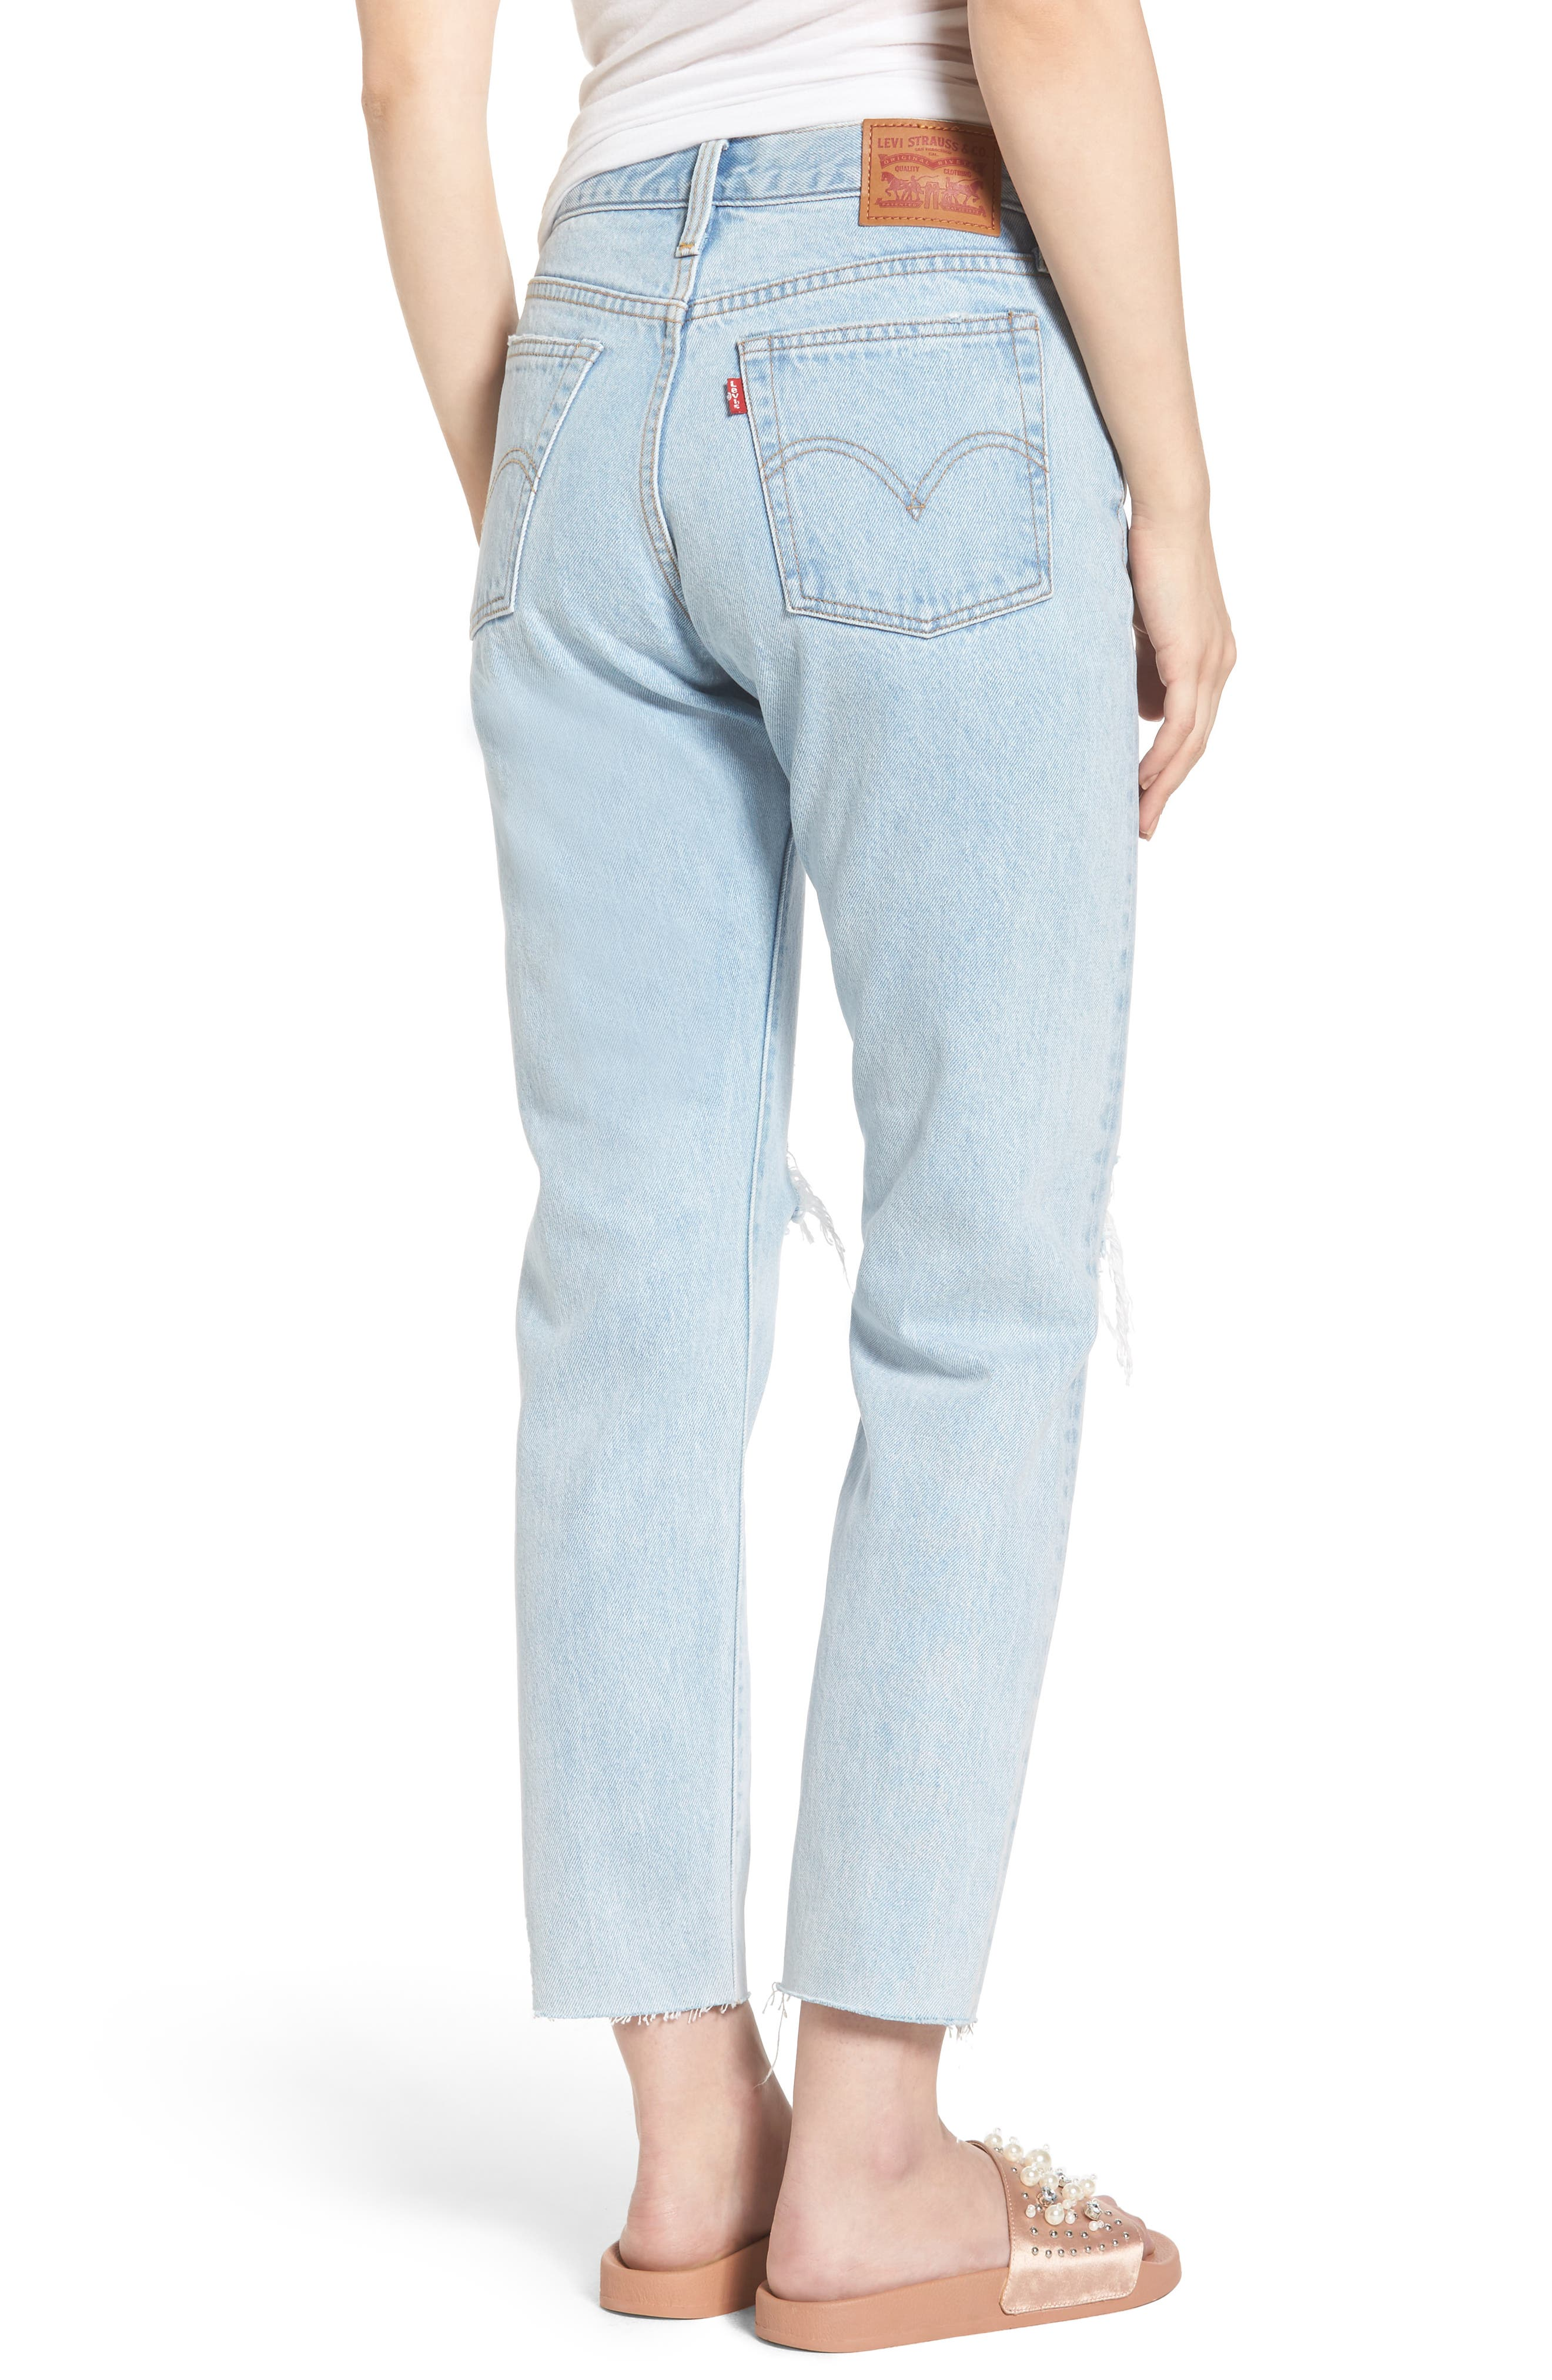 Alternate Image 2  - Levi's® Wedgie High Waist Crop Jeans (Kiss Off)